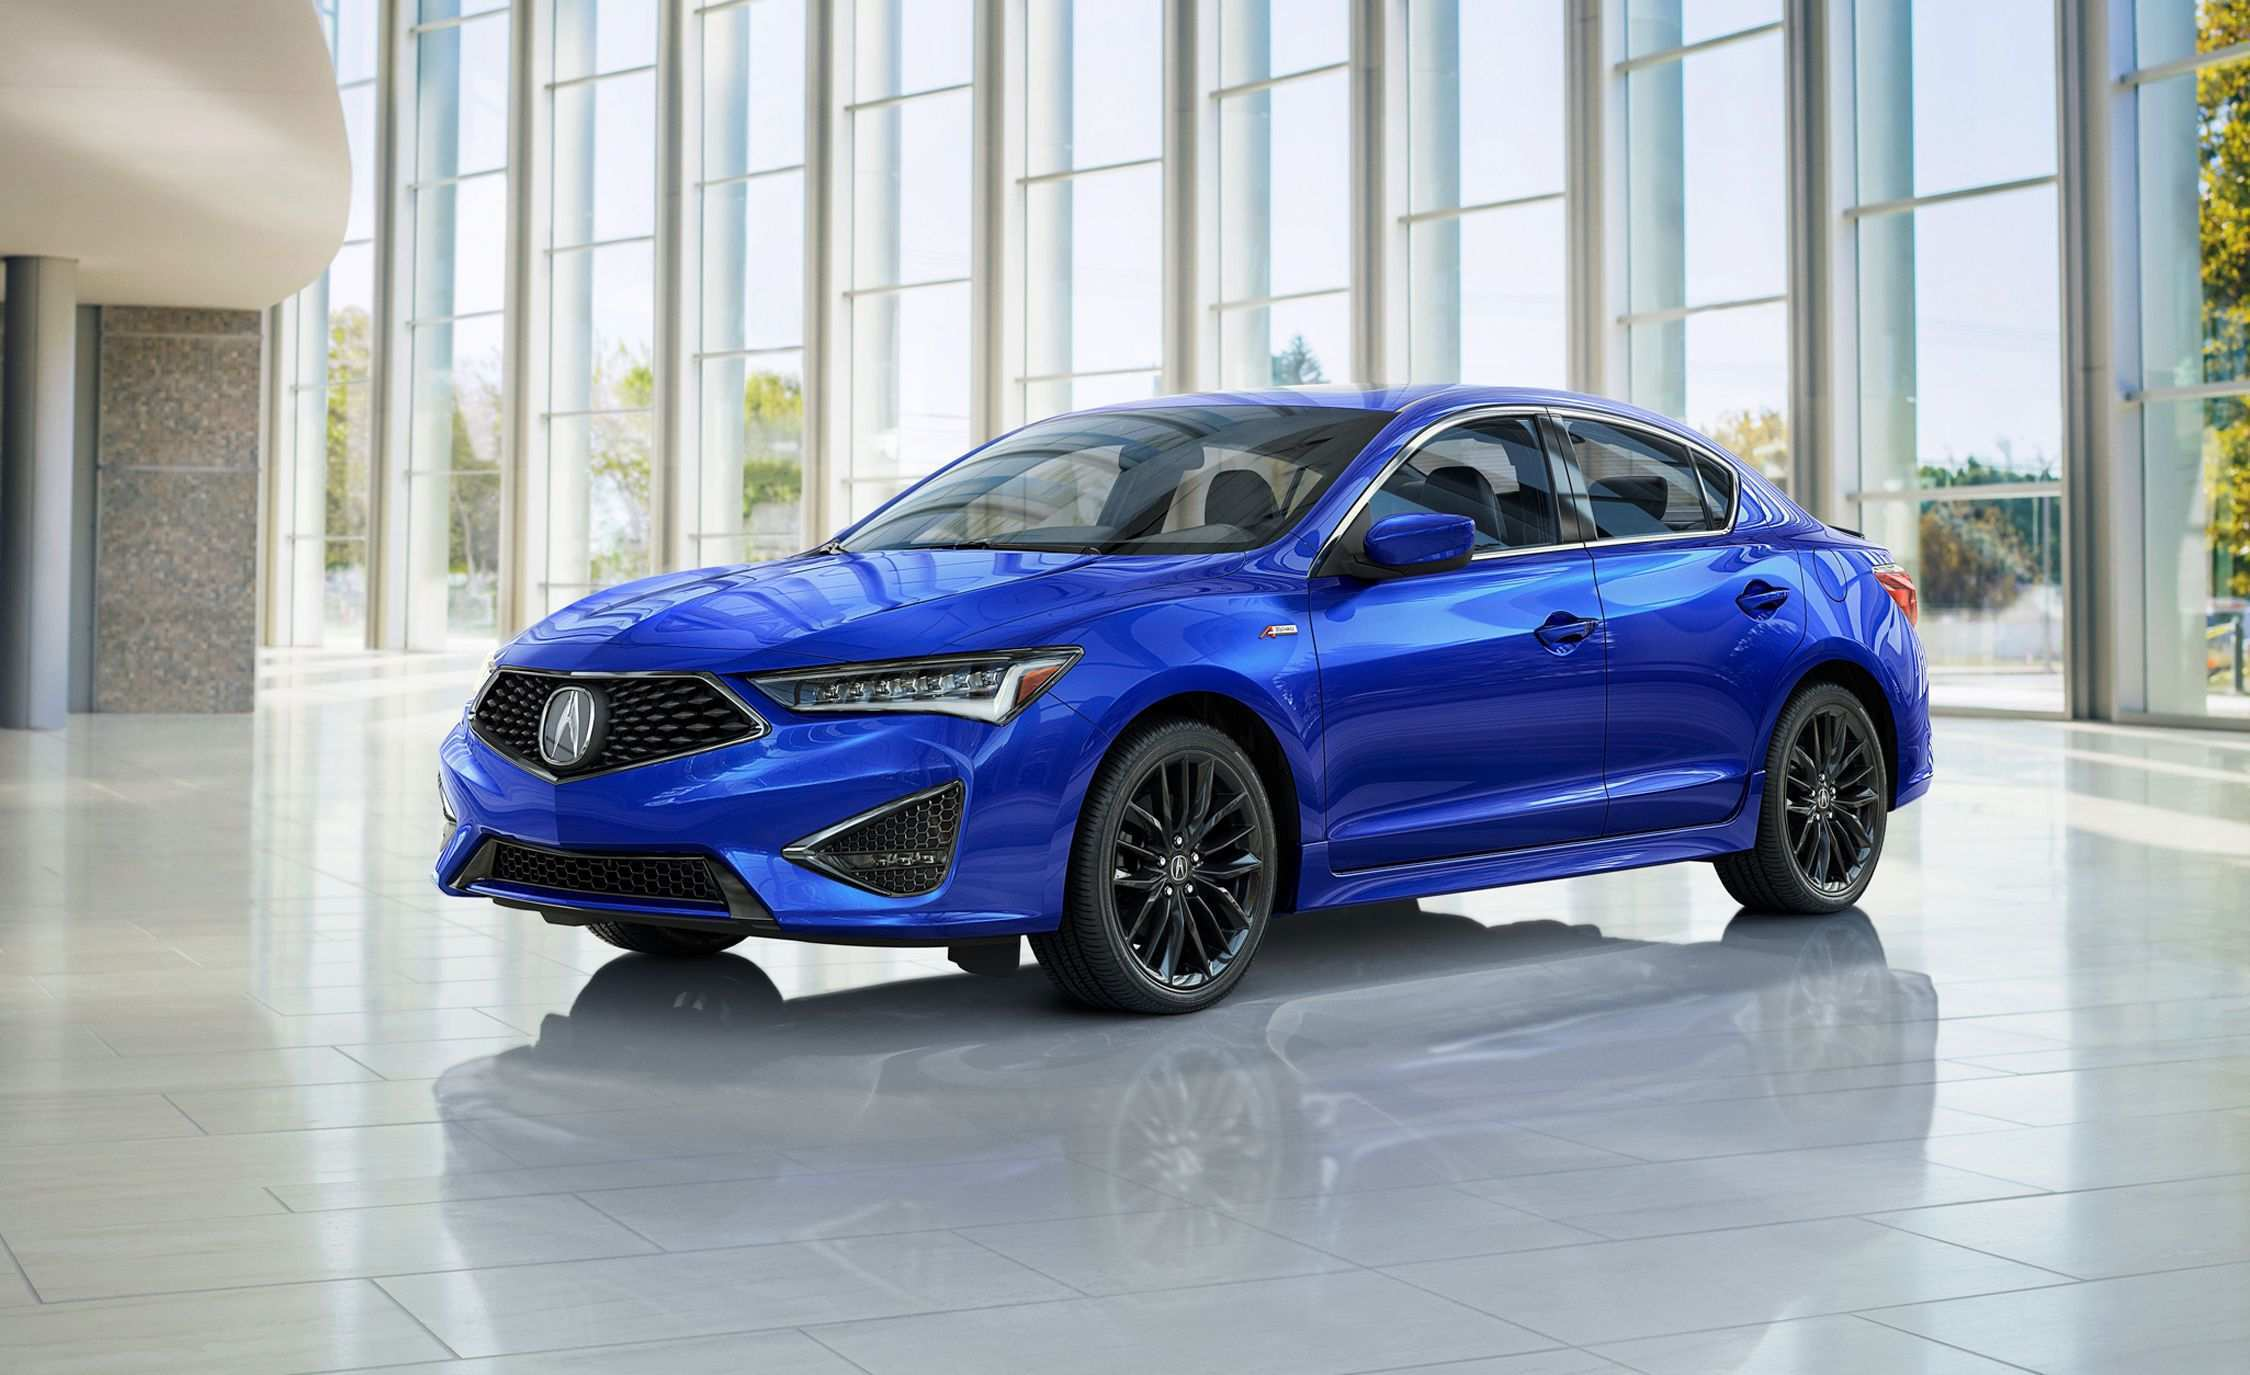 23 Concept of 2019 Acura Cars Configurations for 2019 Acura Cars